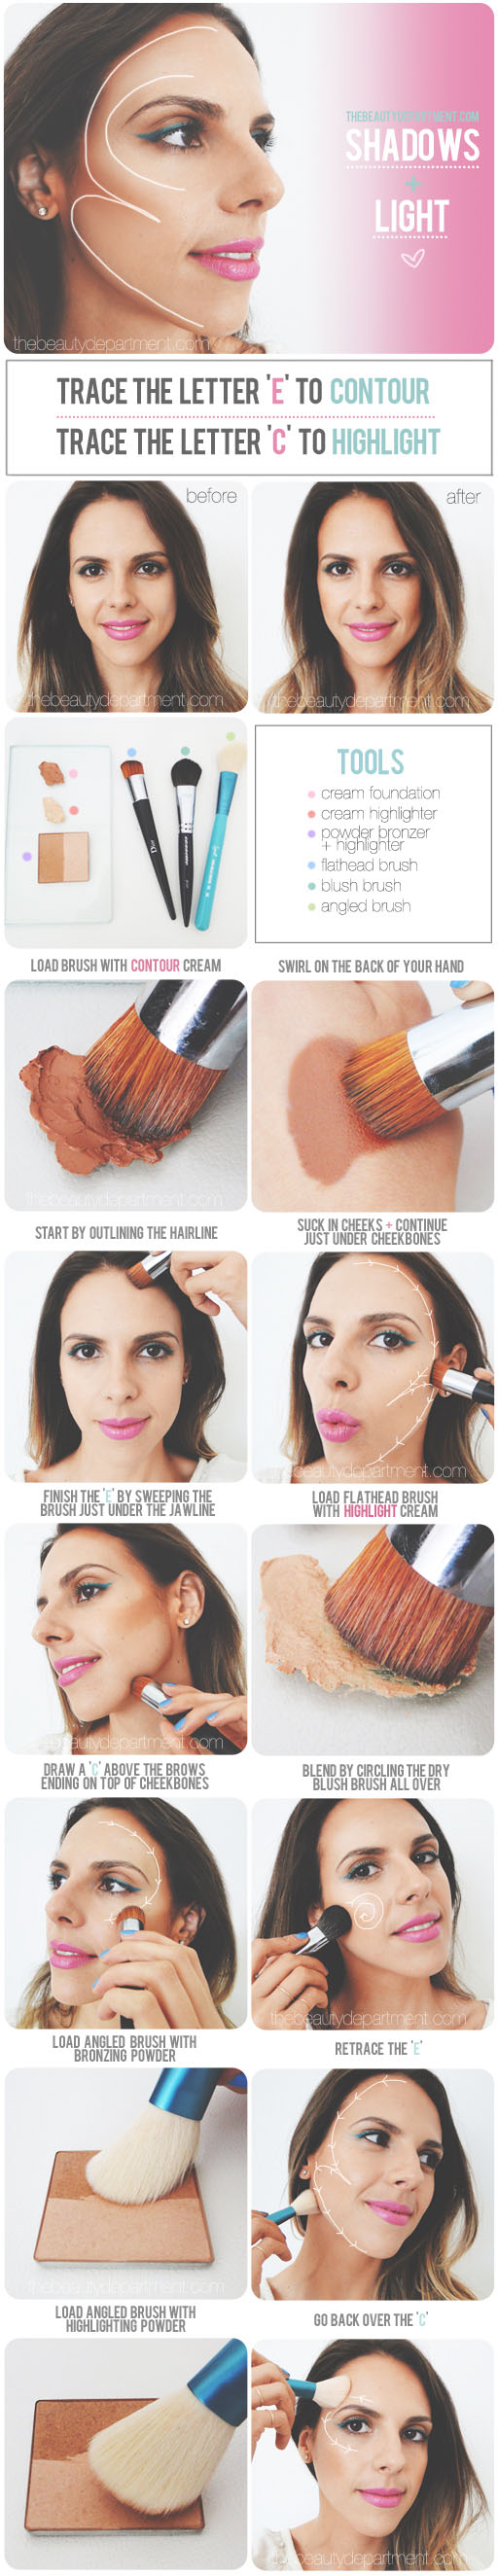 The Beauty Department: Your Daily Dose of Pretty. - HOW TO CONTOUR ...